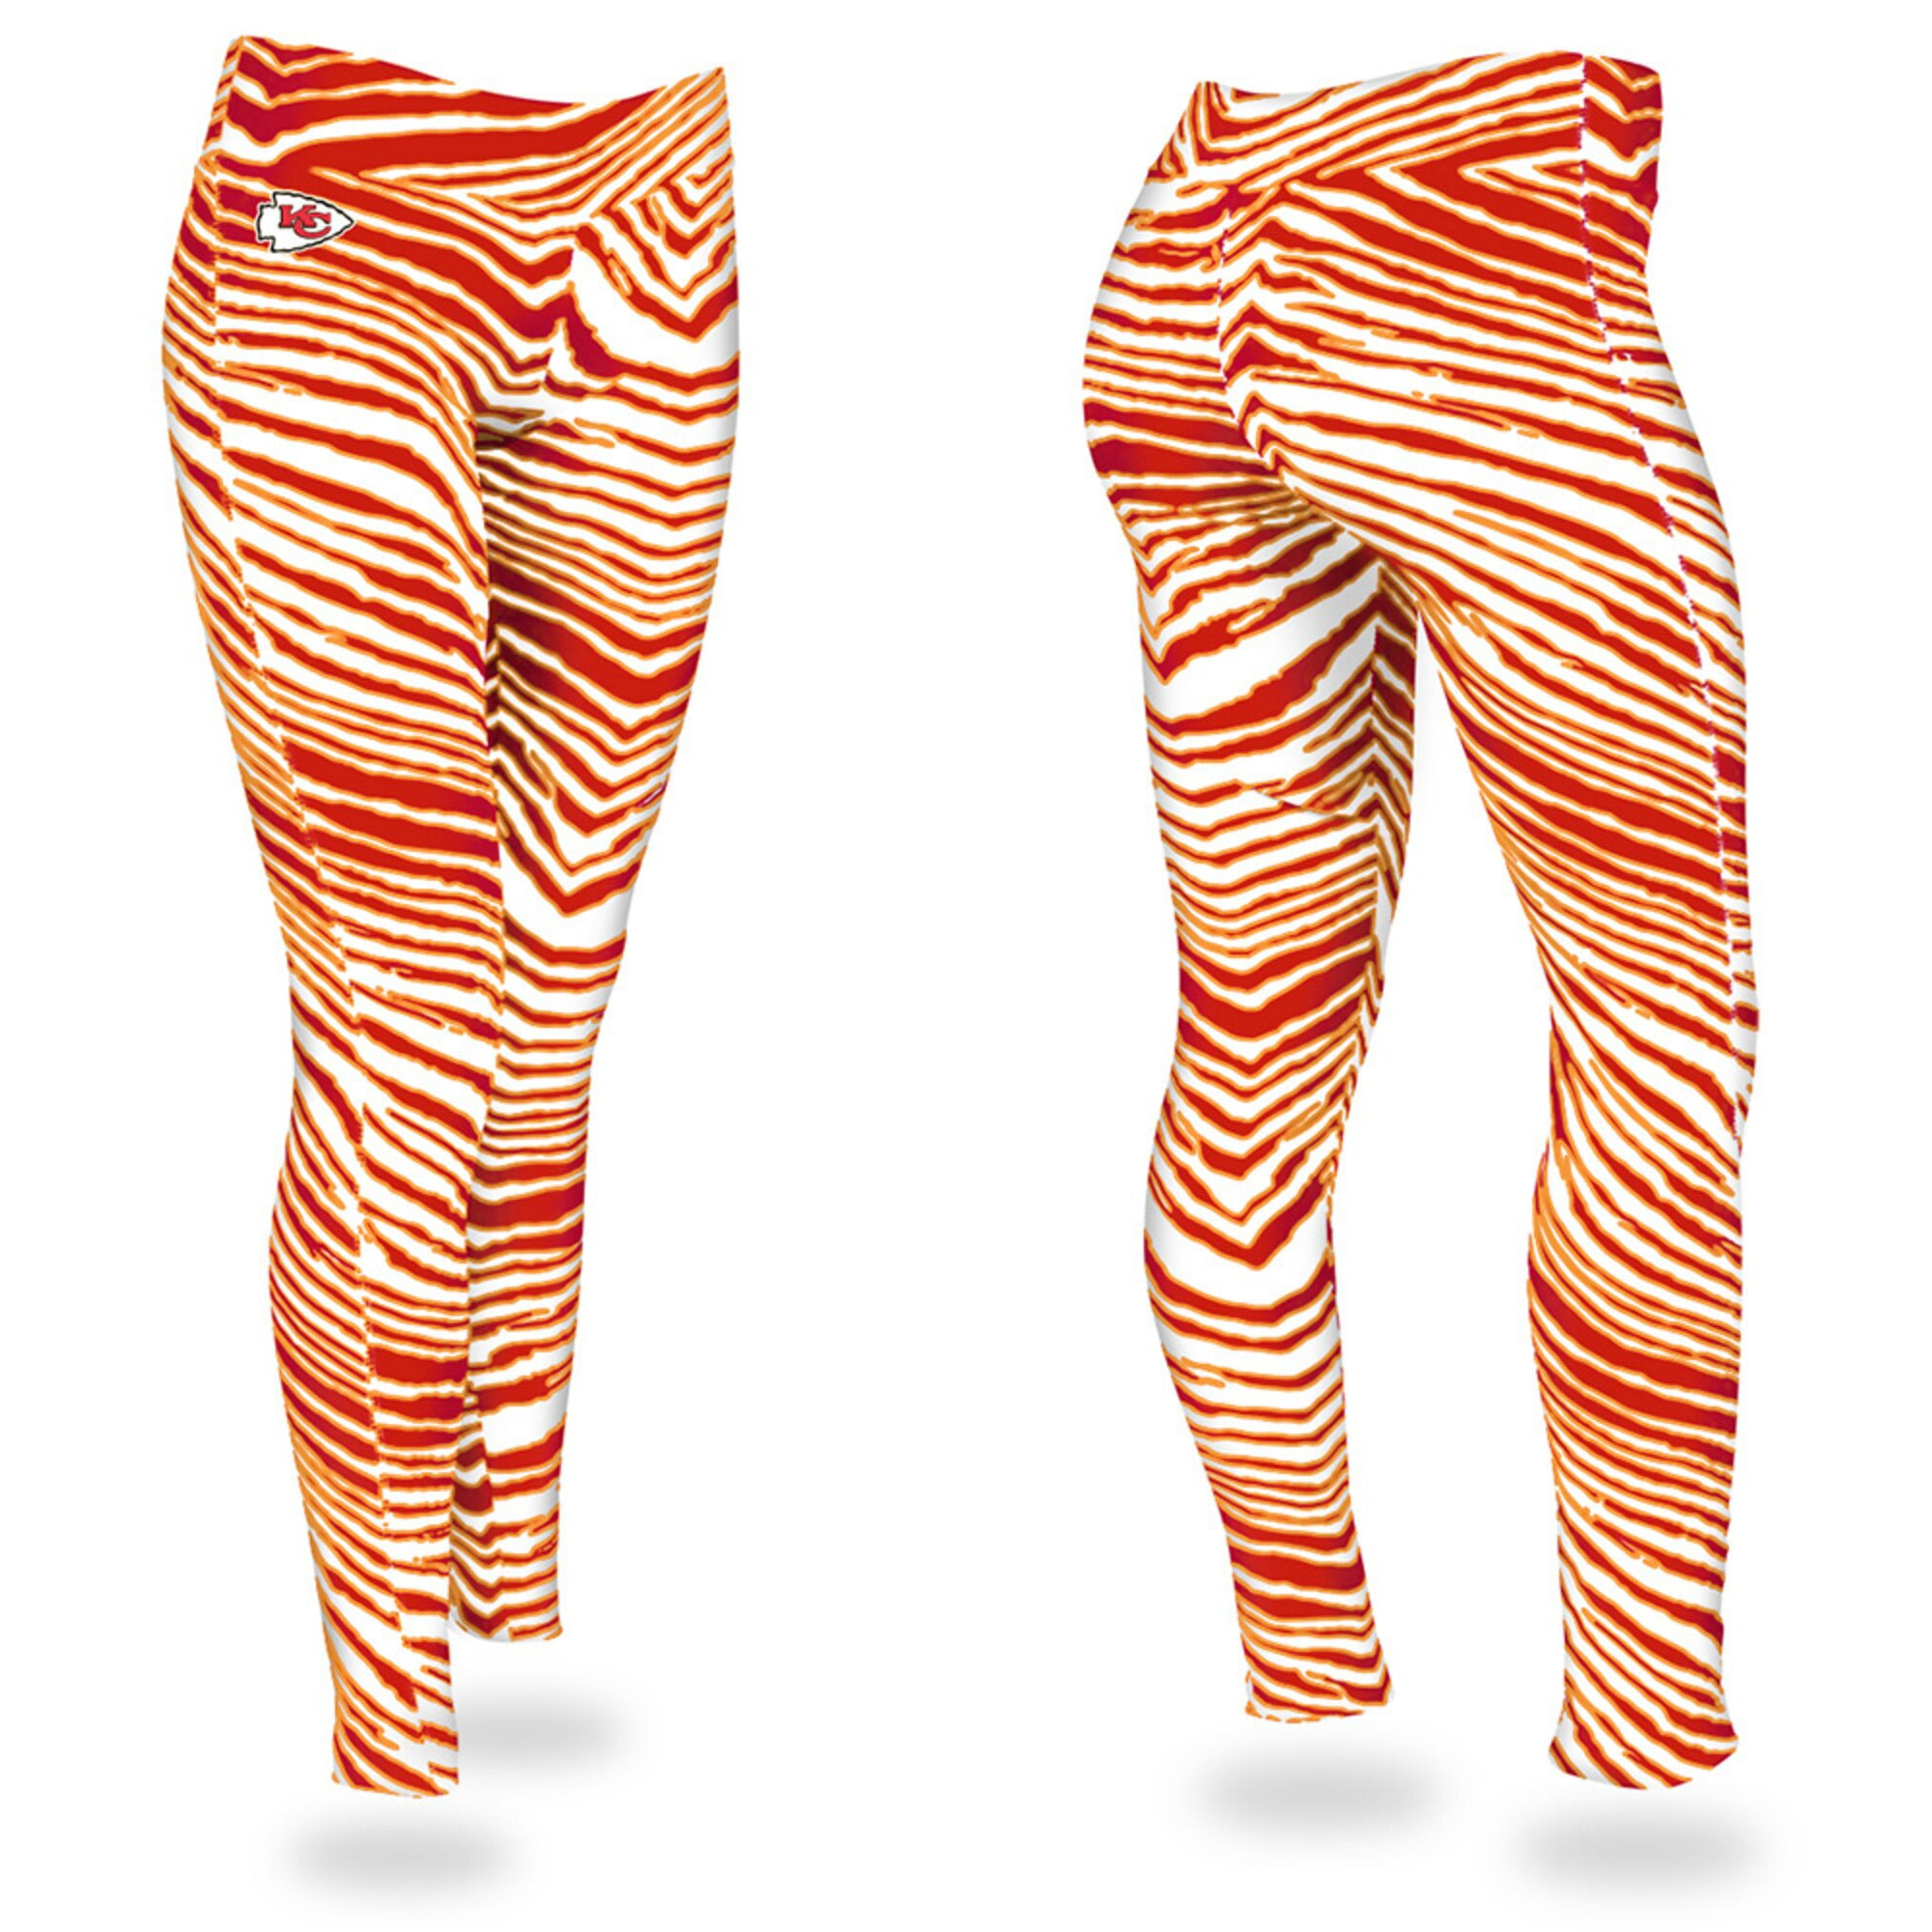 Zubaz Zebra Print Slim Fit Trousers For Ladies-Red/Orange-NA9255